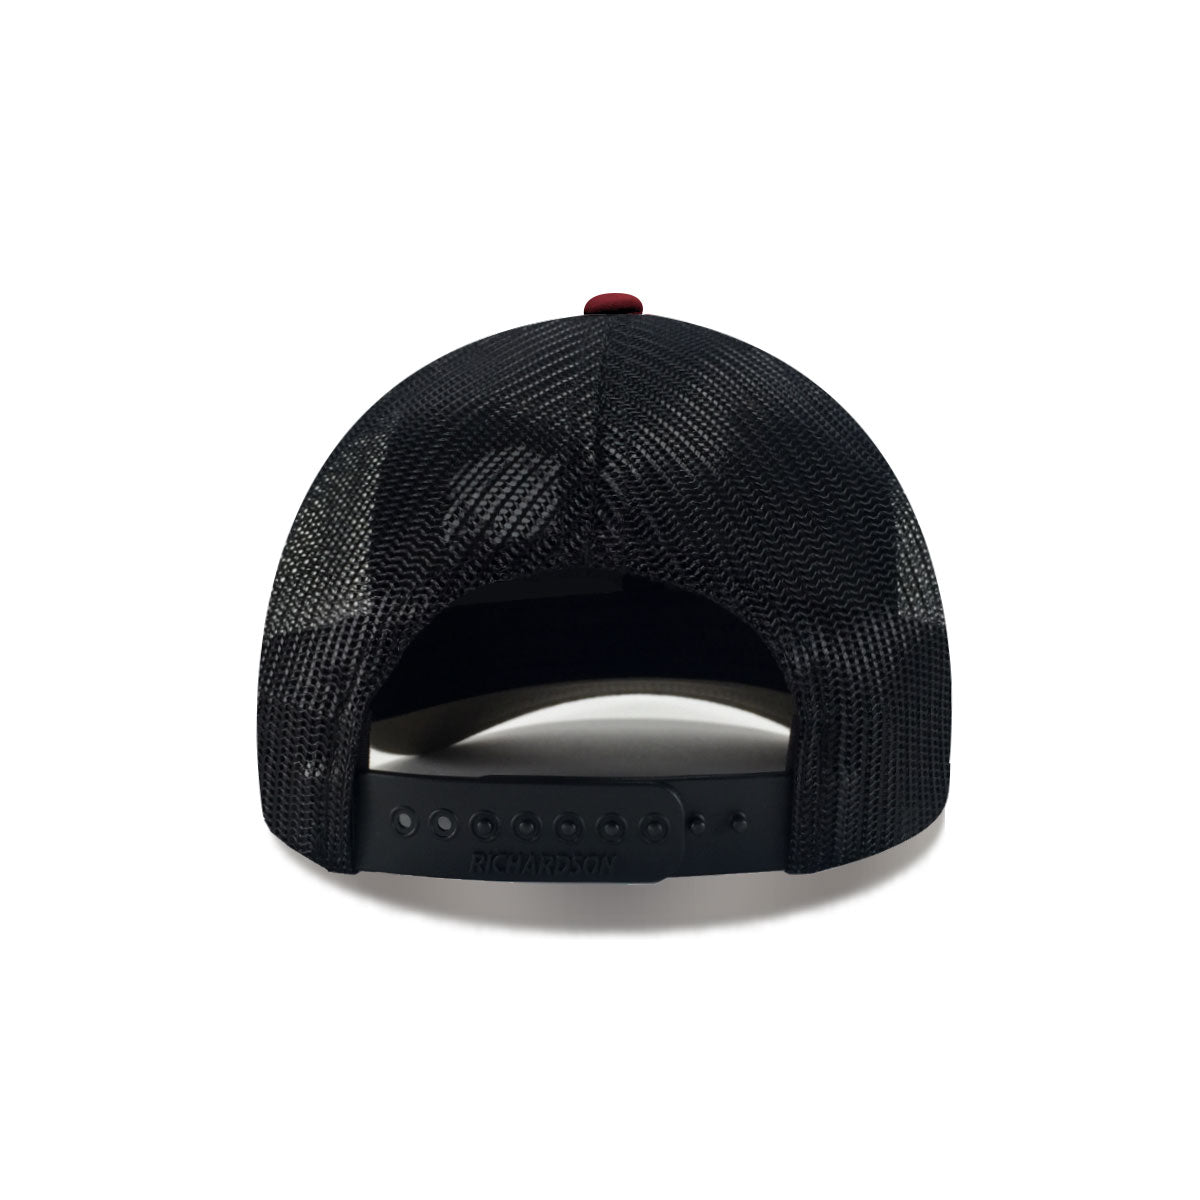 Uintah RA Leather Patch Trucker Hat